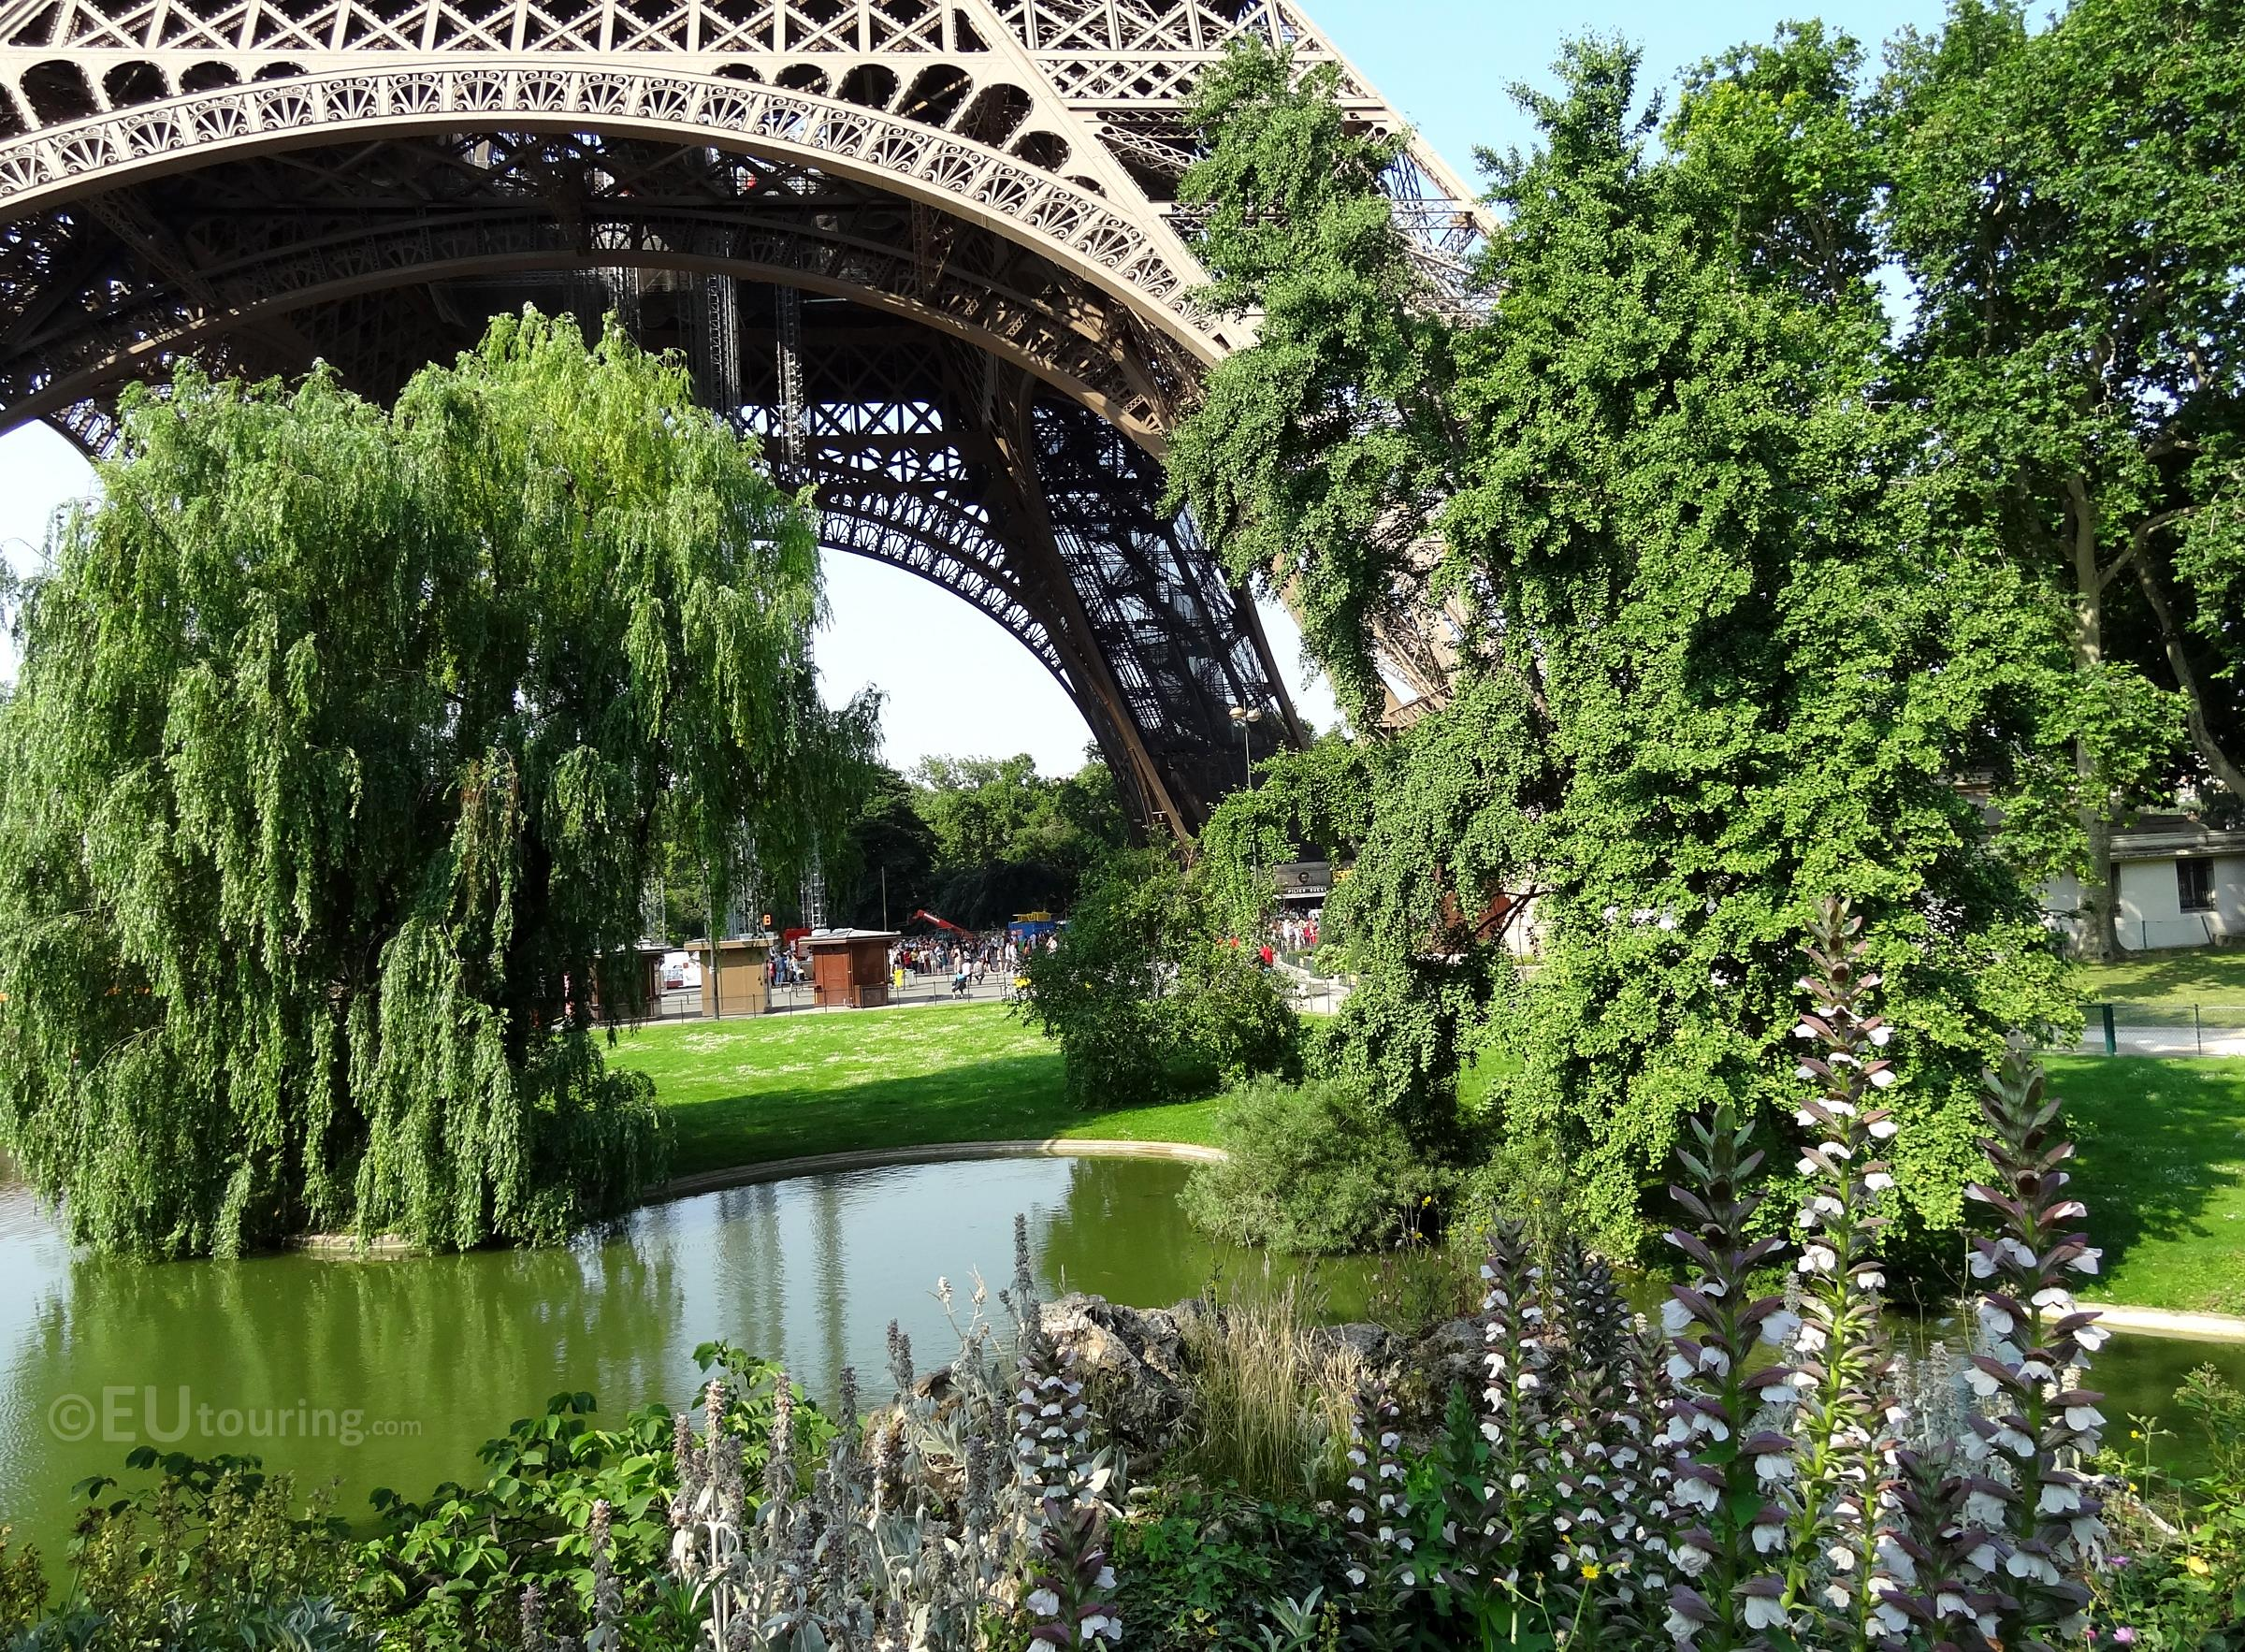 Gardens at the Eiffel Tower